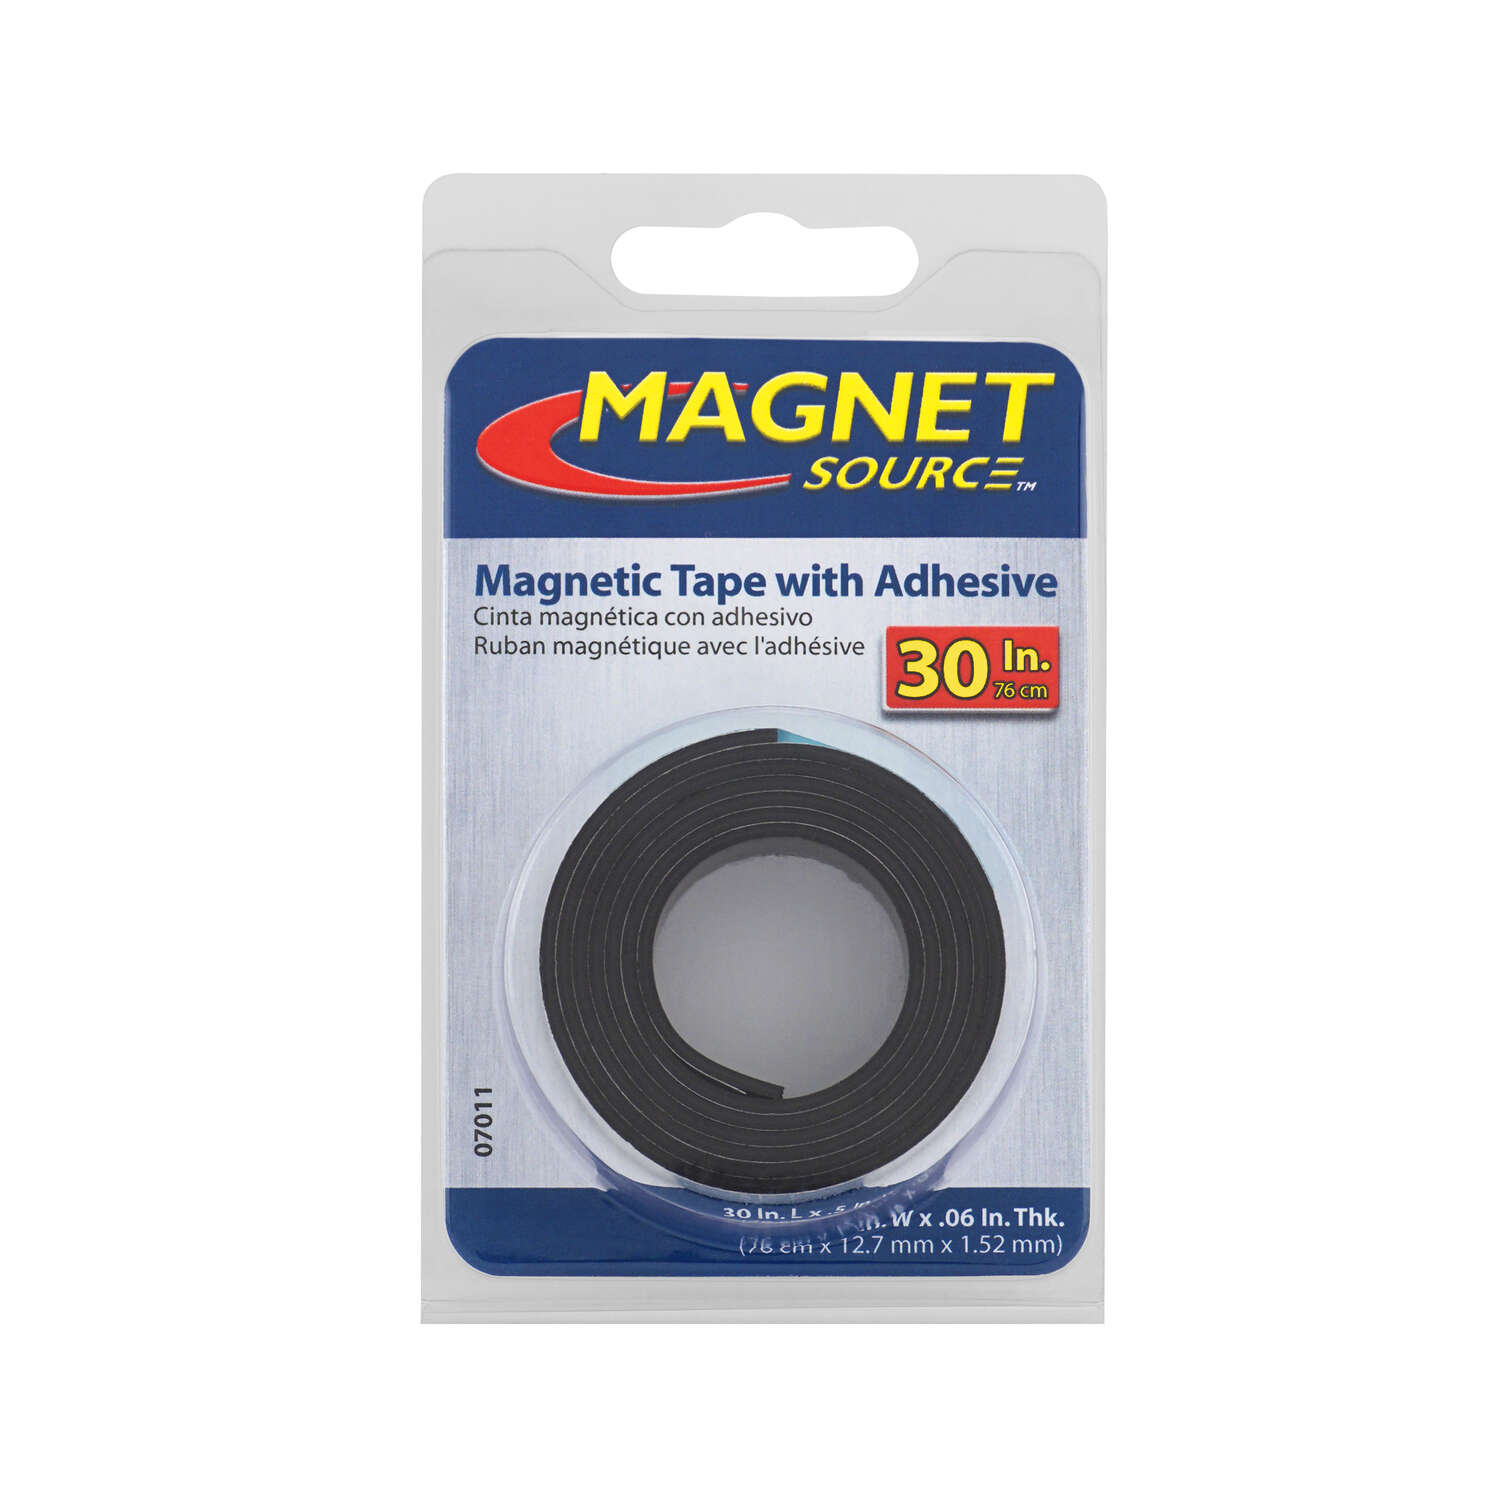 Master Magnetics  The Magnet Source  30  Ferrite Powder/Rubber Polymer Resin  Strip  0.6 MGOe Black